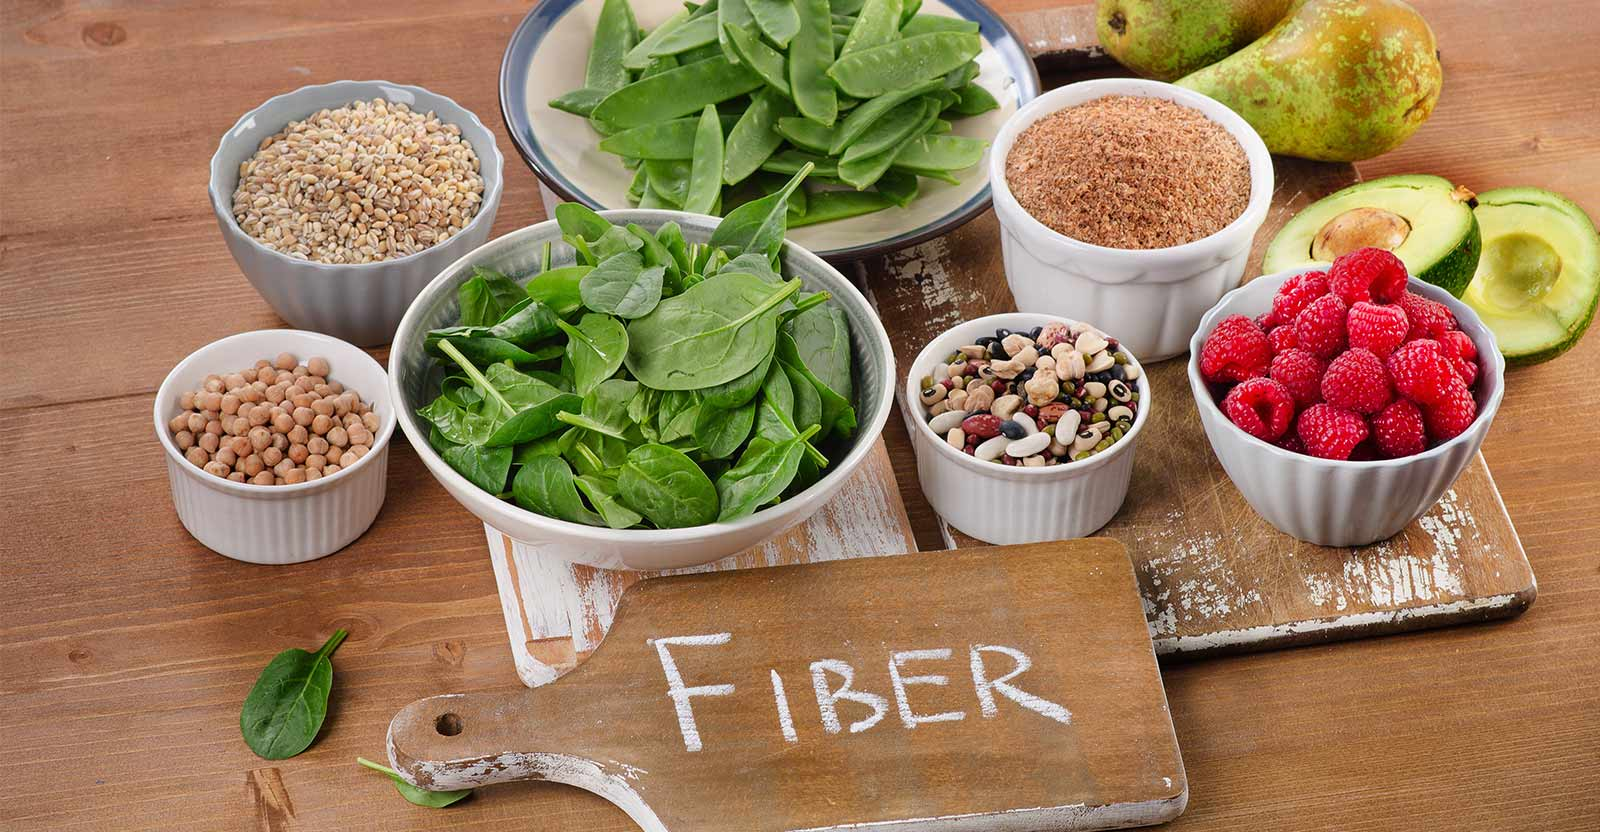 health benefits of fiber